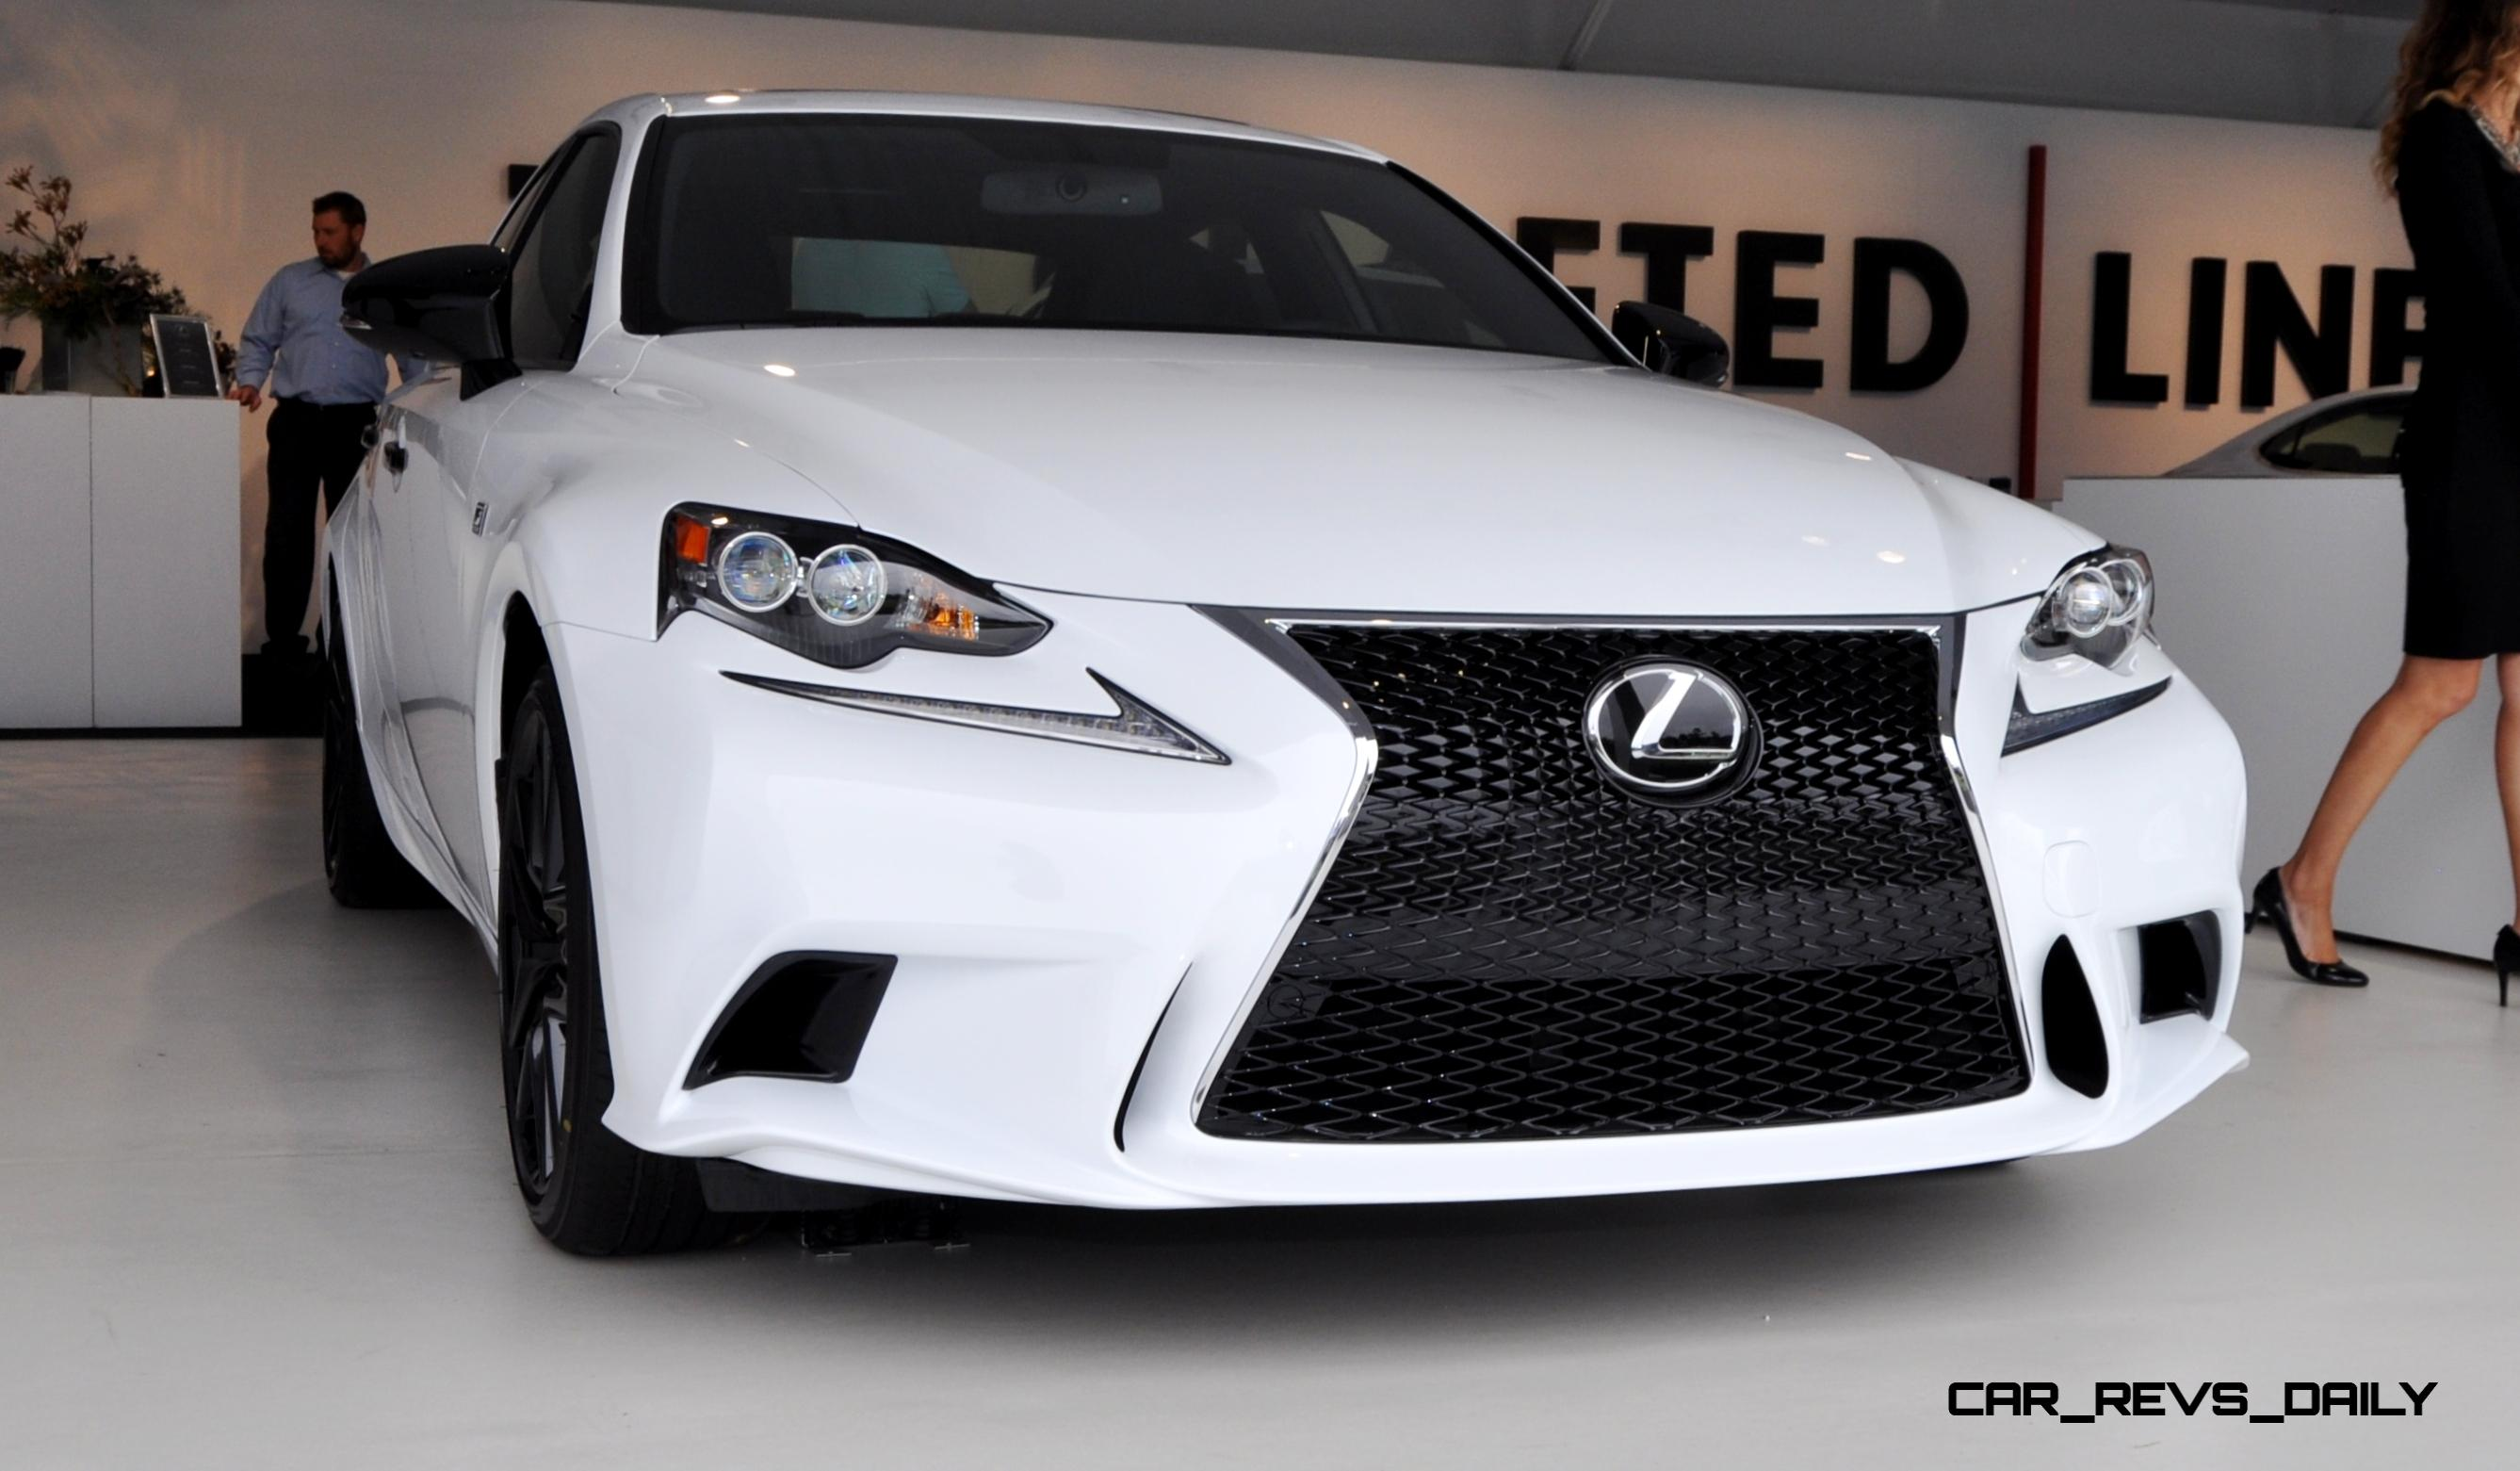 Car Revs Daily 2015 Lexus IS250 F Sport CRAFTED LINE 1